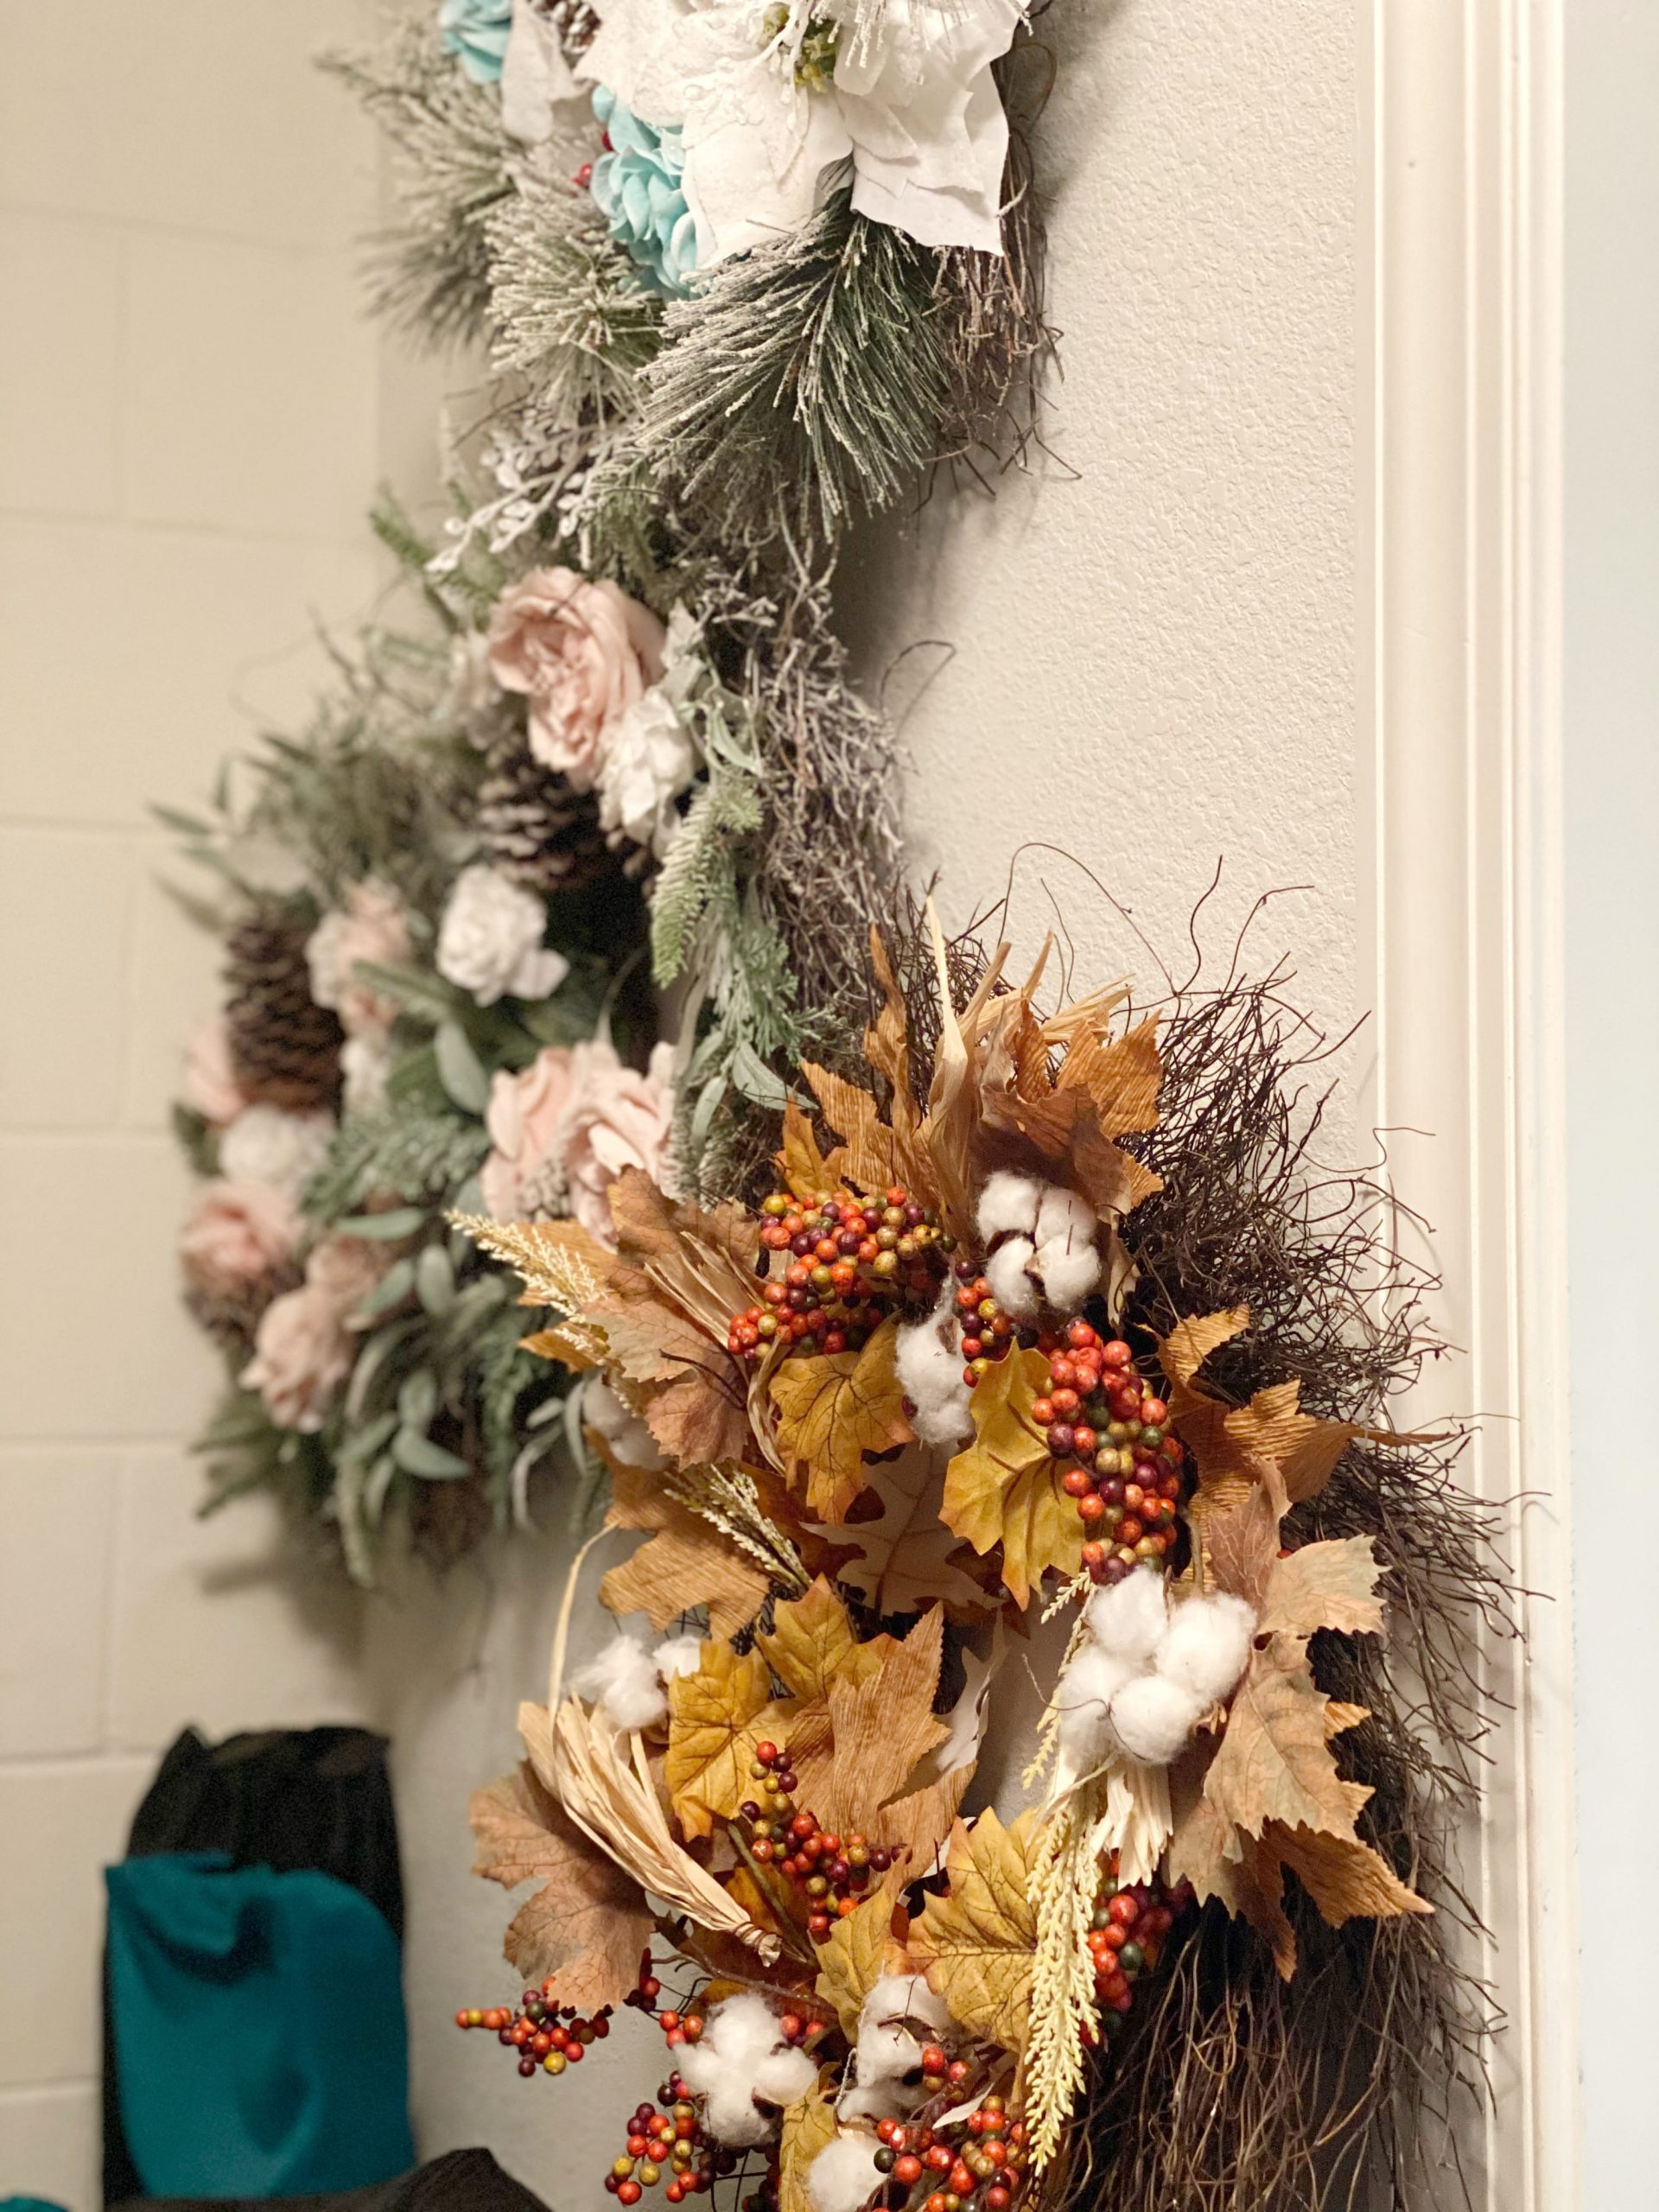 How to store seasonal wreaths